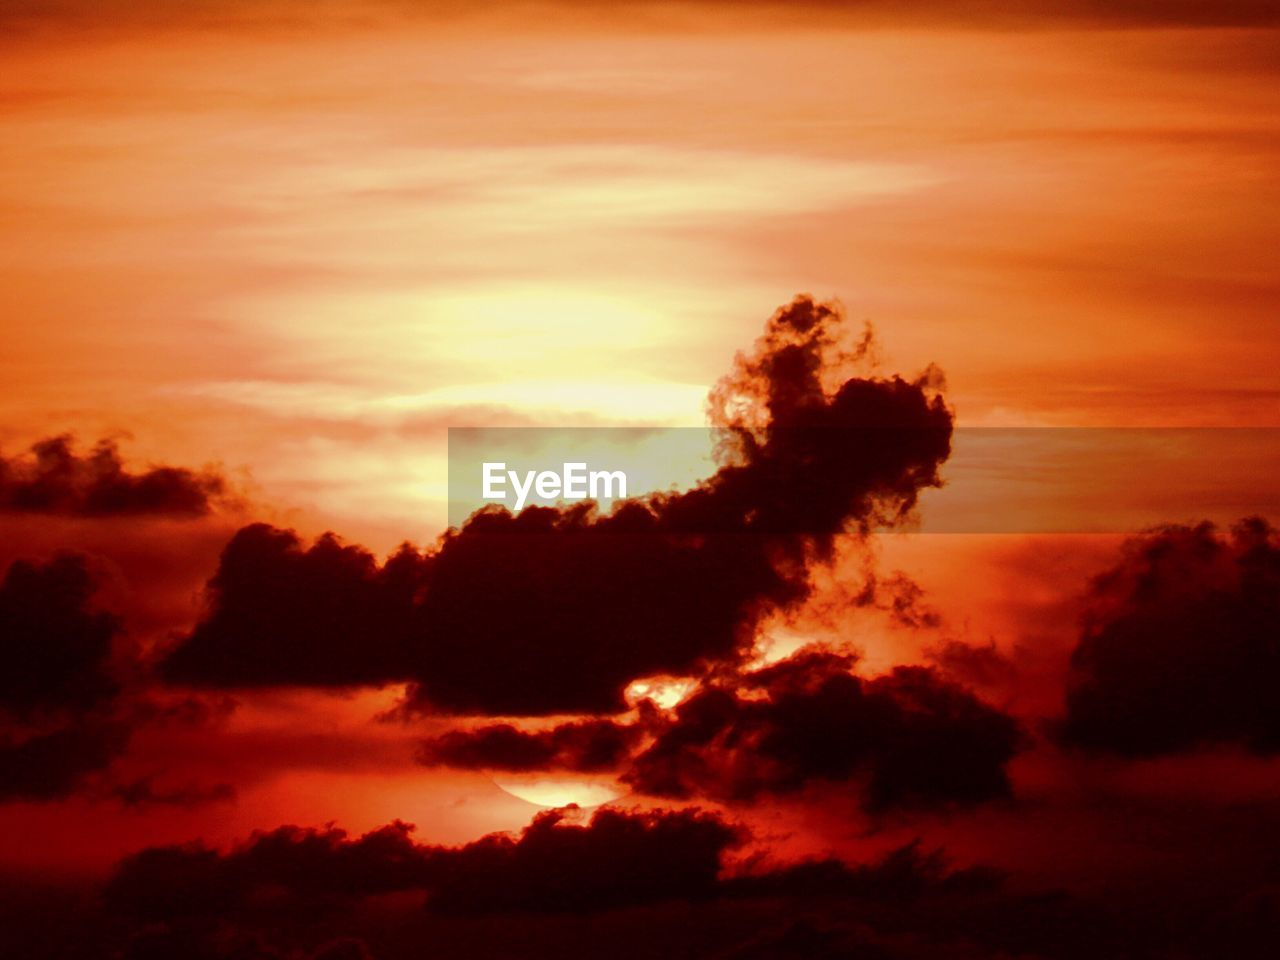 sunset, nature, beauty in nature, scenics, sky, silhouette, dramatic sky, tranquil scene, tranquility, cloud - sky, atmospheric mood, no people, idyllic, outdoors, low angle view, sky only, backgrounds, tree, day